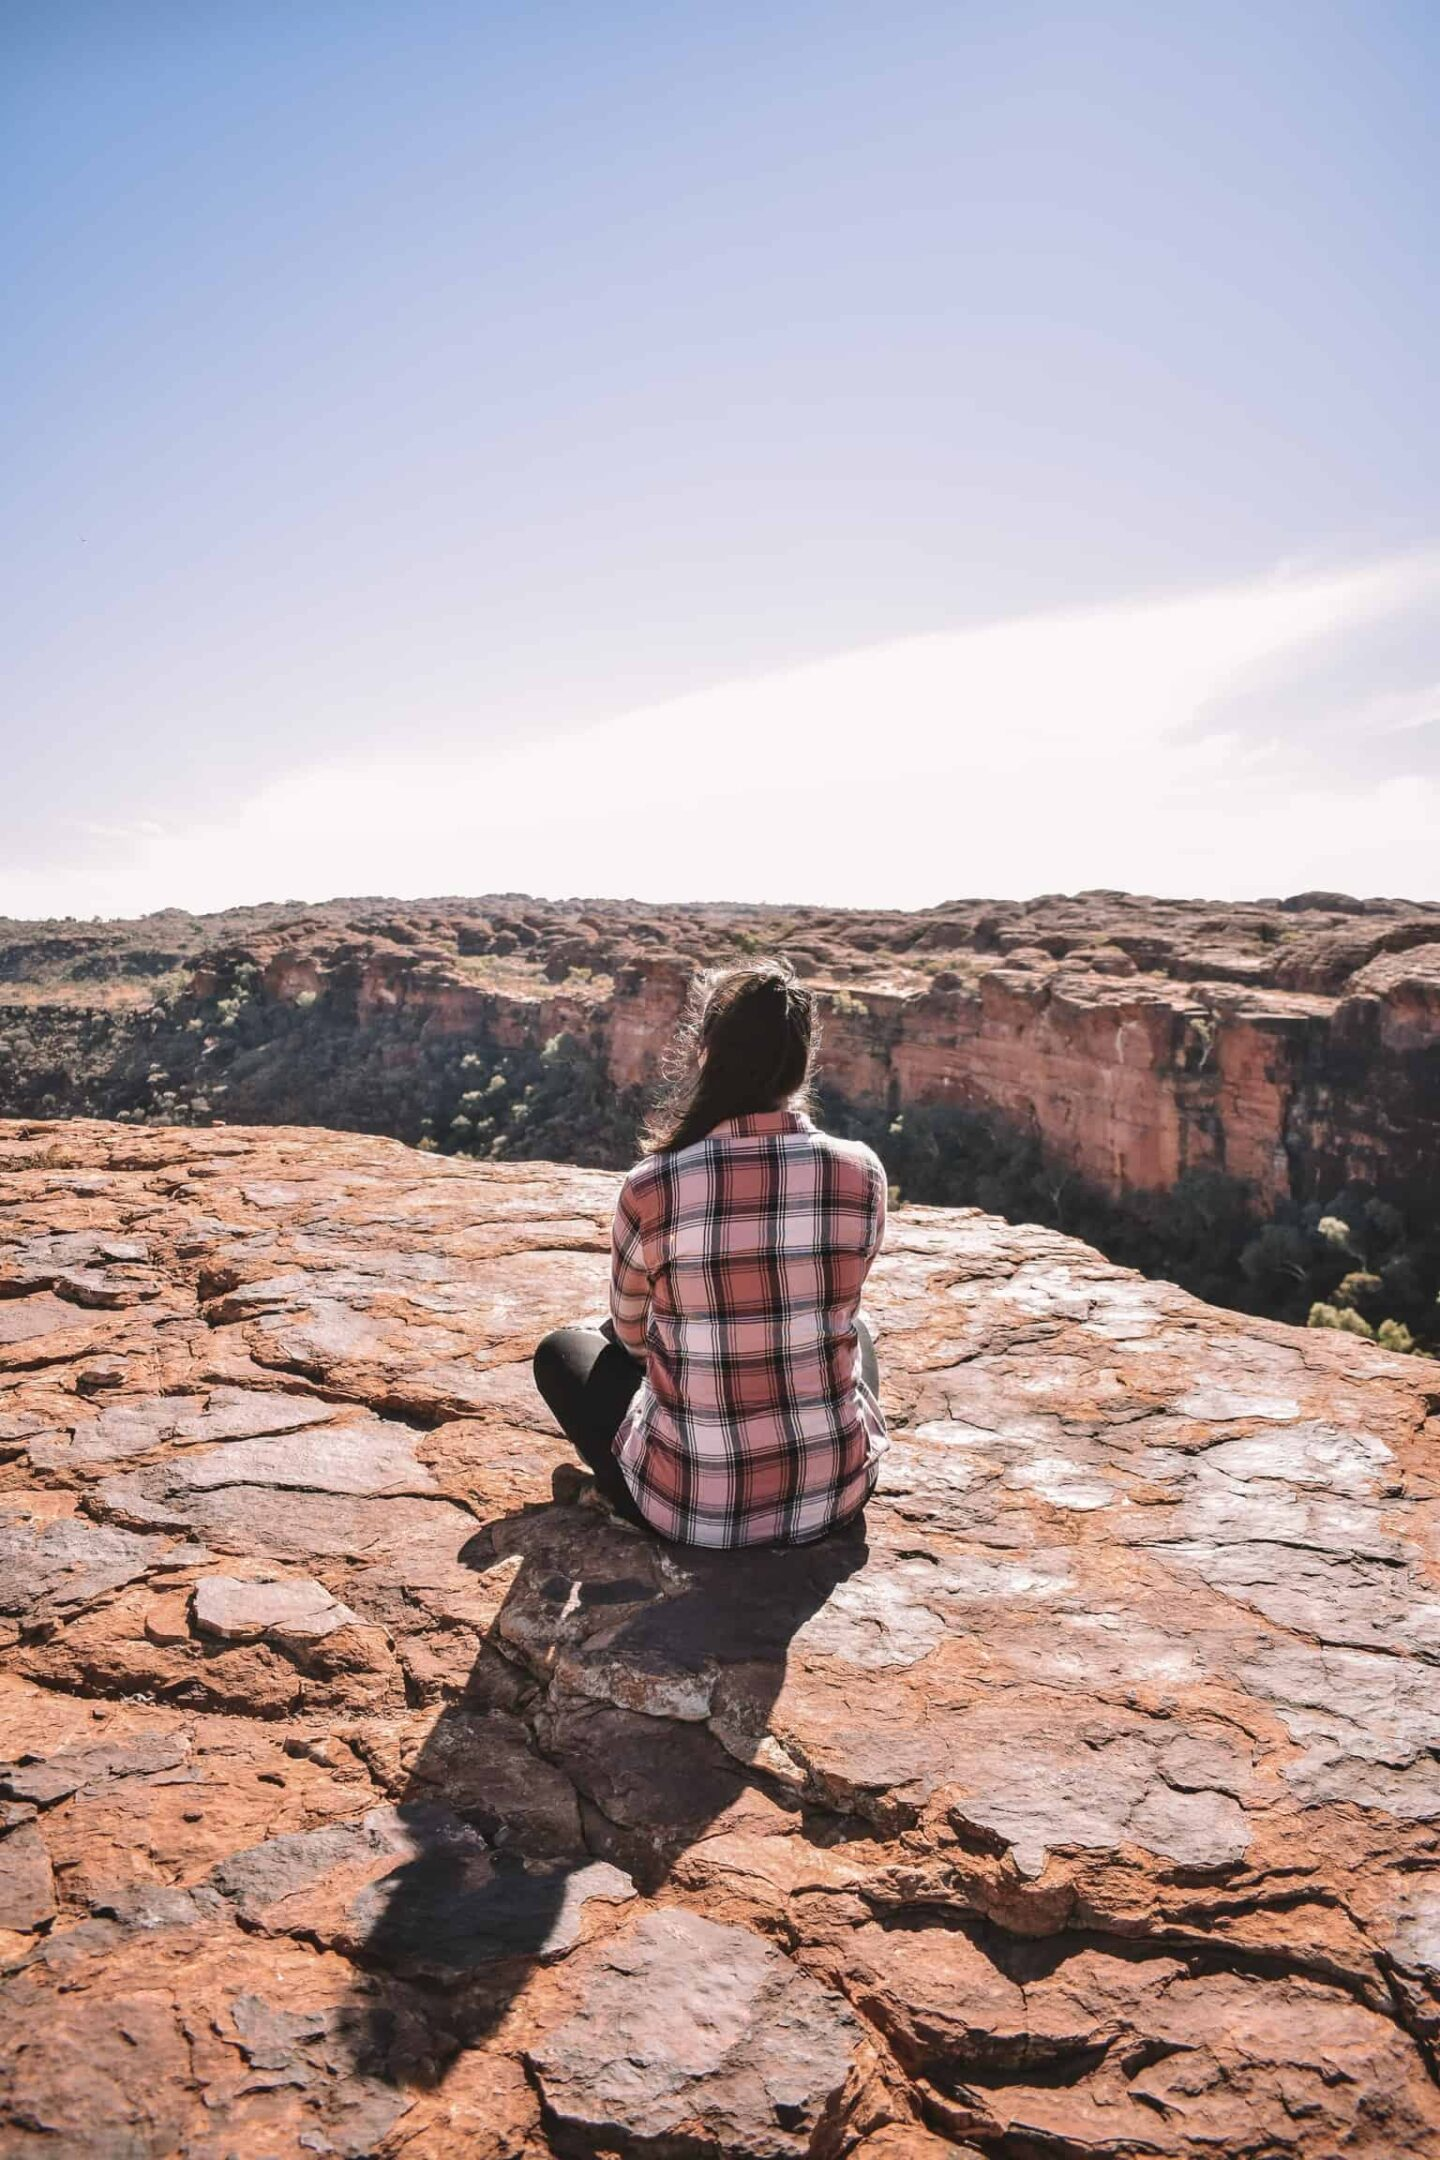 Working online has never looked better. Why I gave up being a travel influencer to follow my dreams. Travel blogger in her element adventuring around AUstralia.